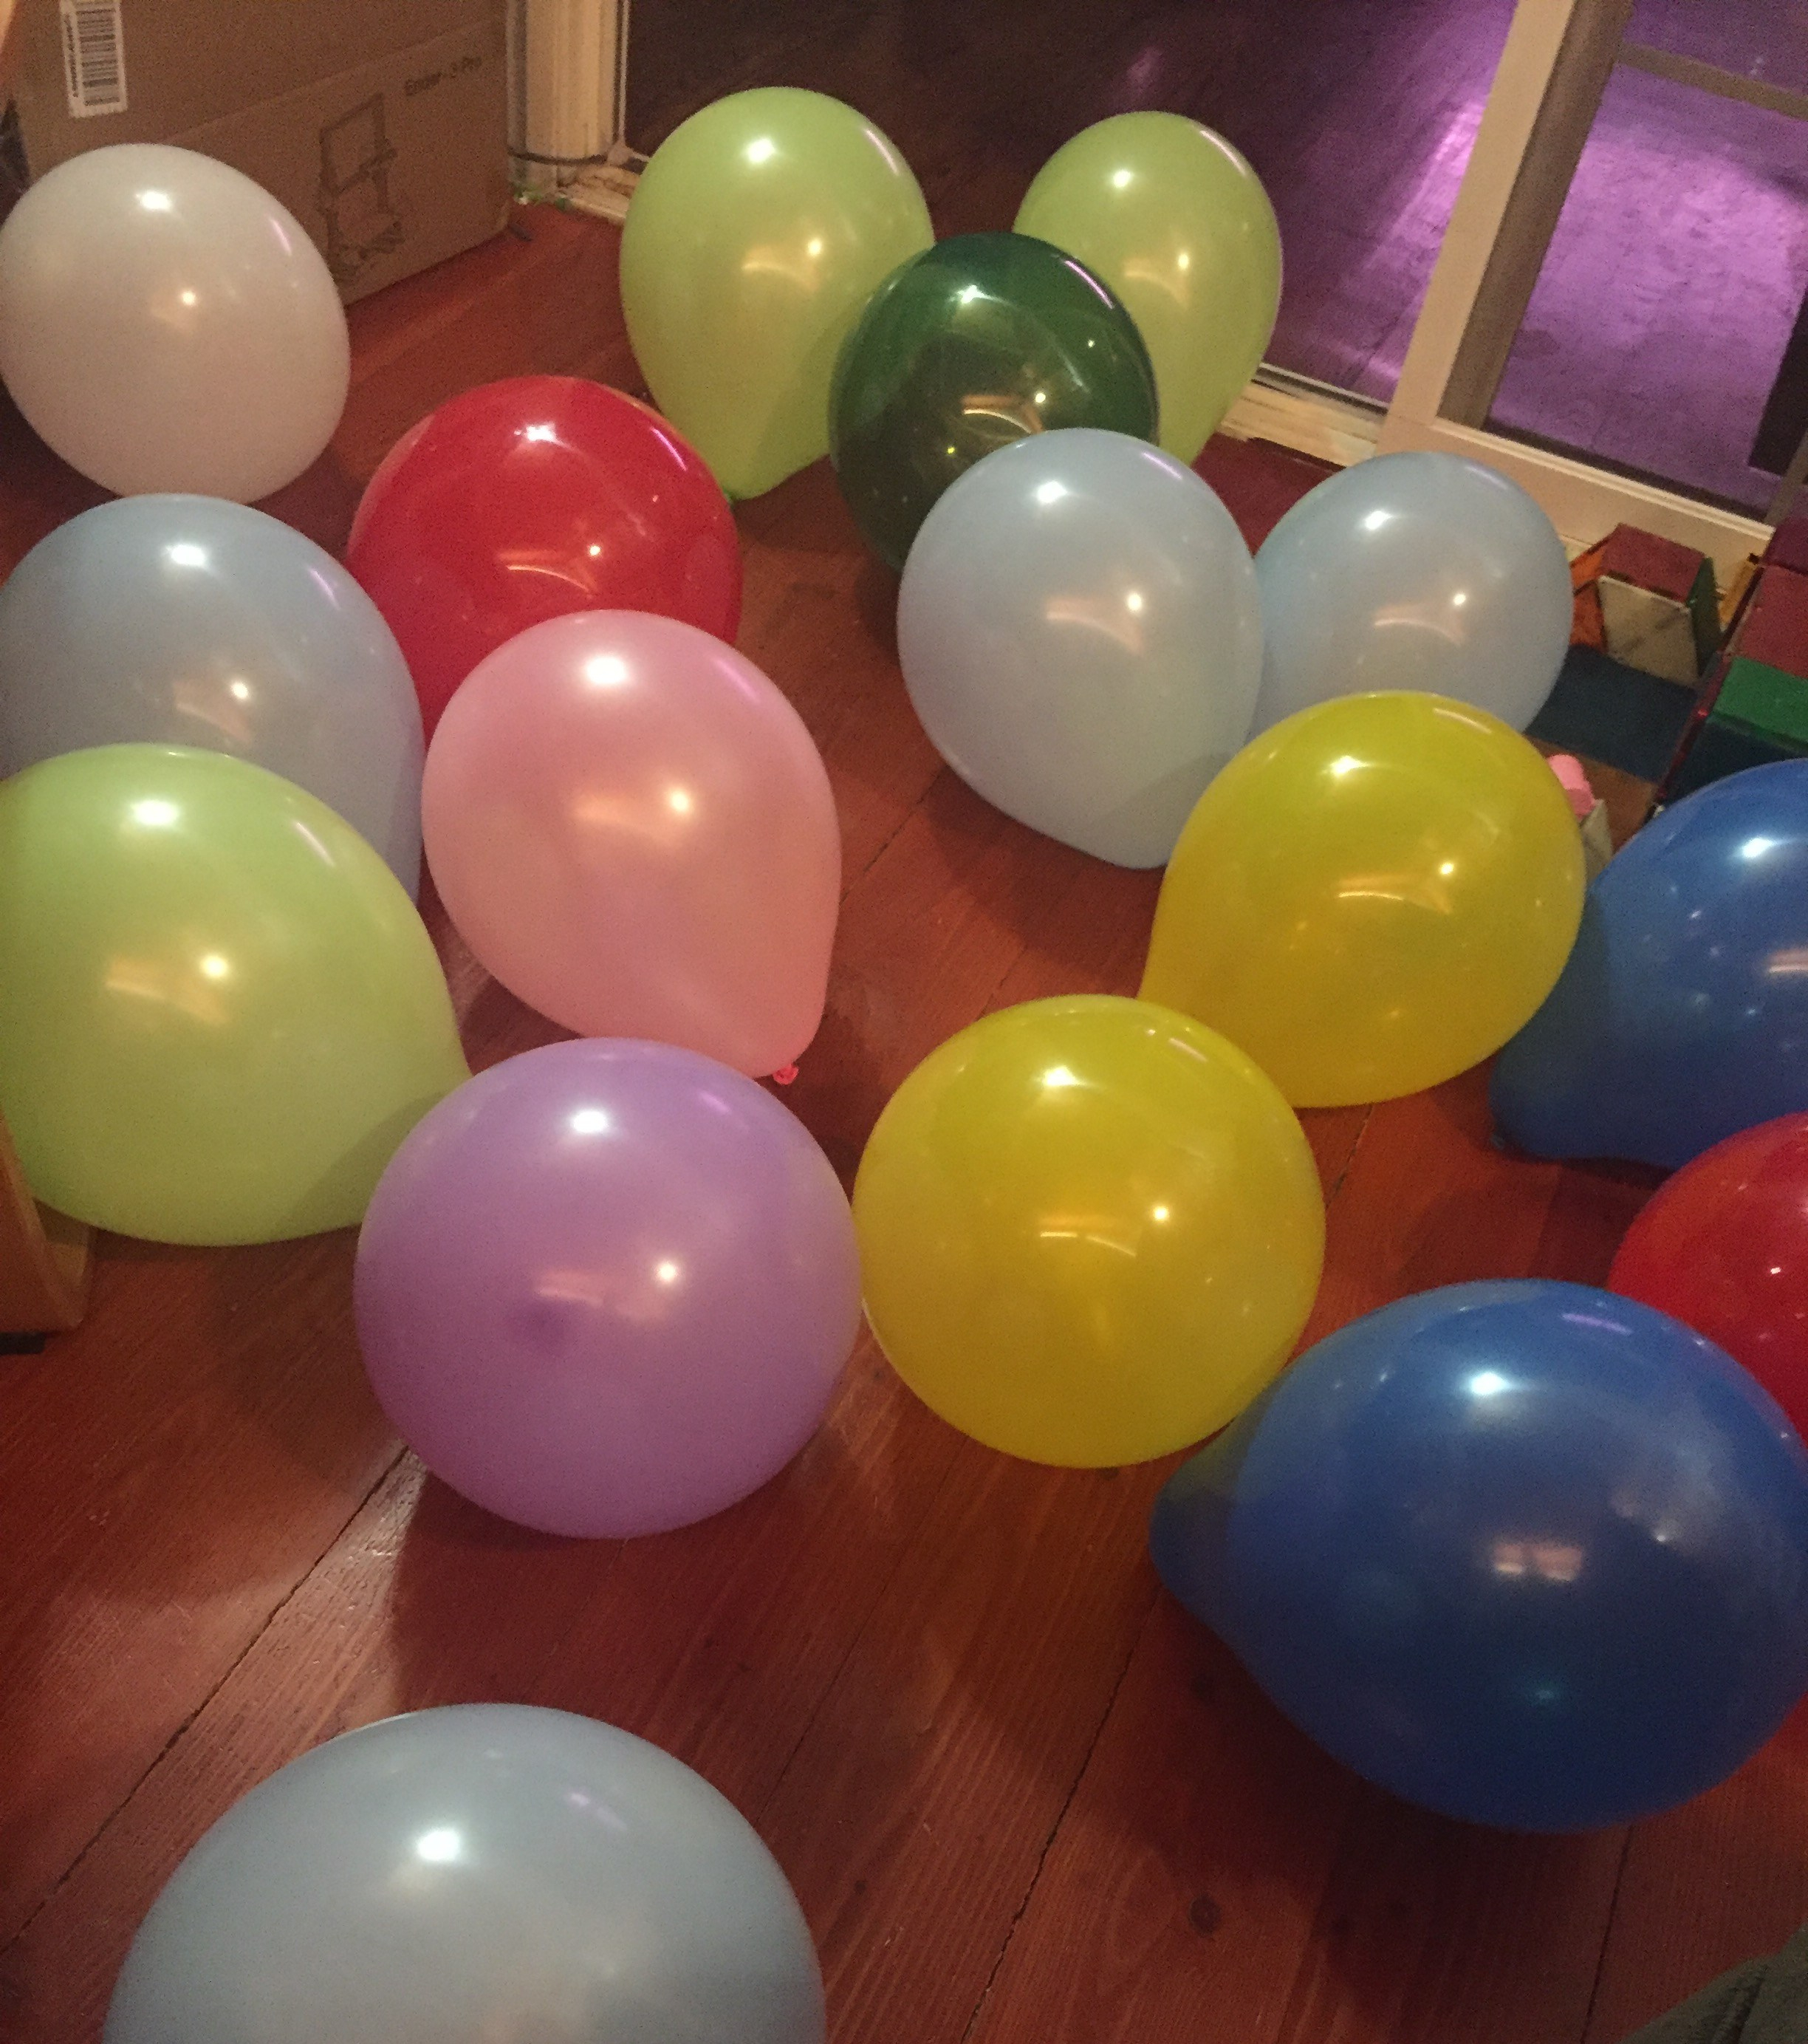 Birthday balloons inflated and scattered over hardwood floor